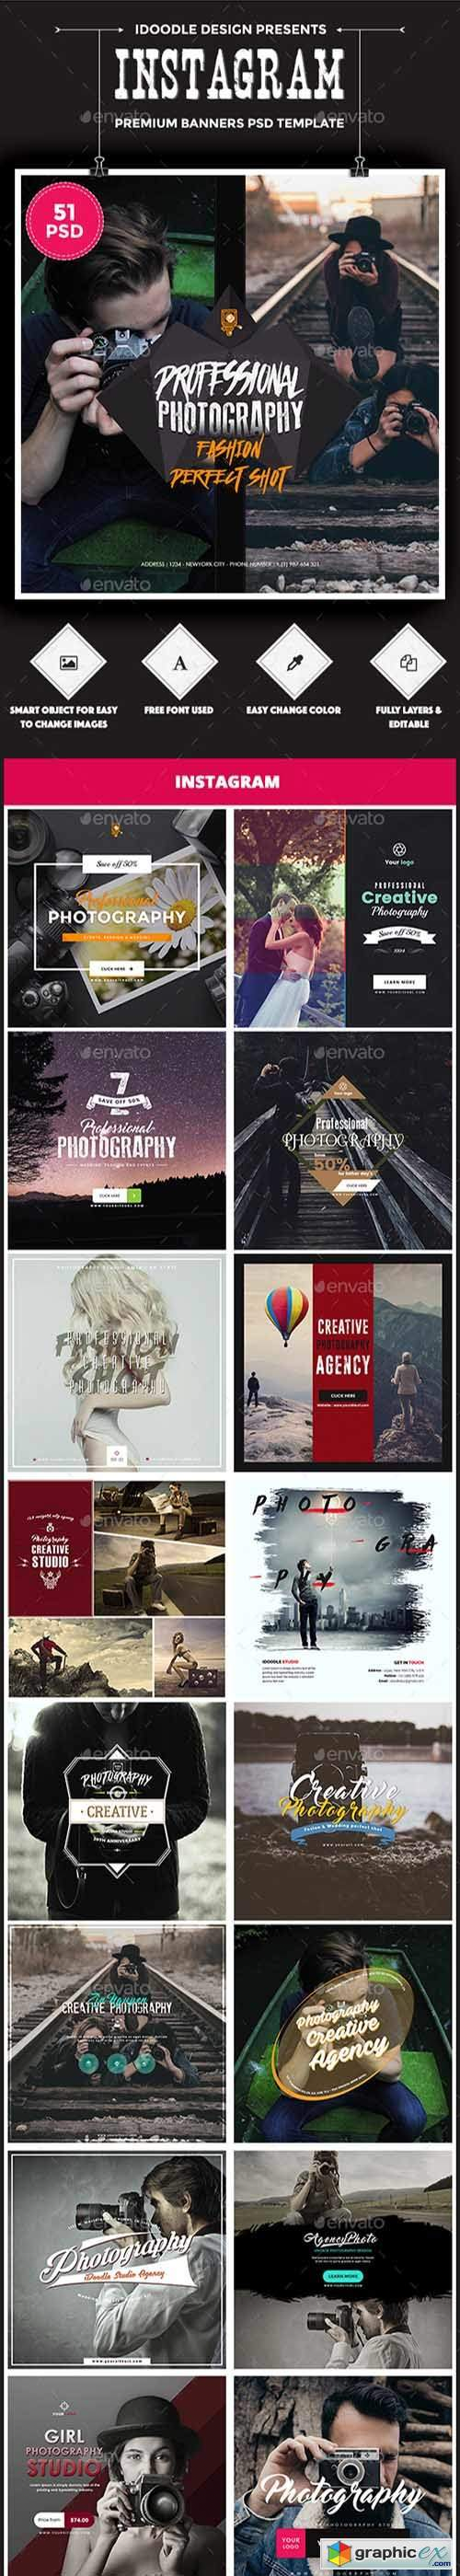 Bundle Photography Instagram - 51 PSD [03 Sets]